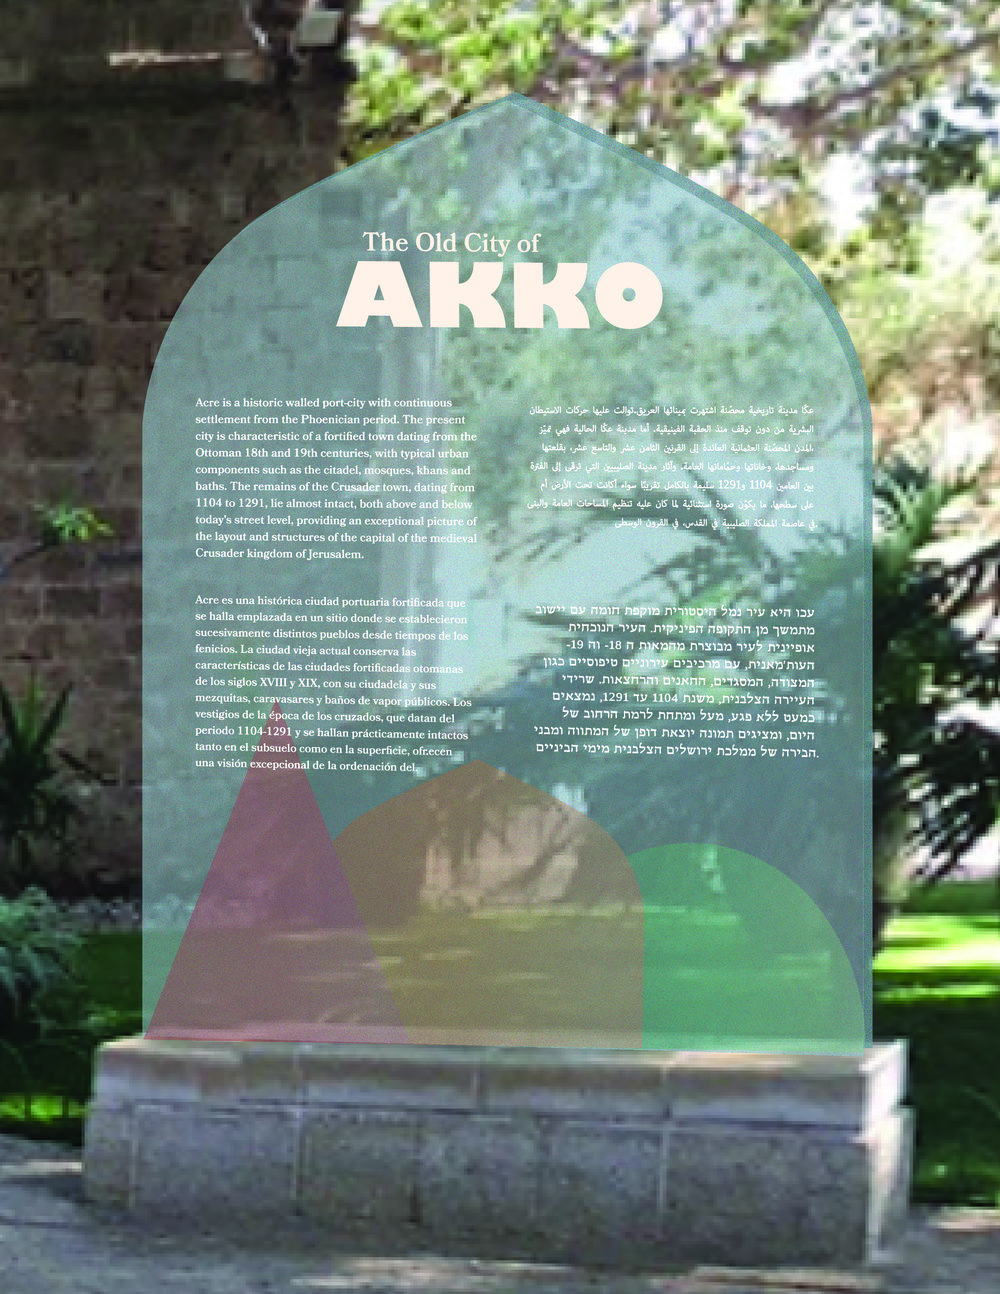 - 3D SITE SIGNTo make site signage that would fit in with the natural space, I chose to use glass to not take too much attention away from the historic stone and architecture. There would be two of these signs featuring the 8 UNESCO required languages.